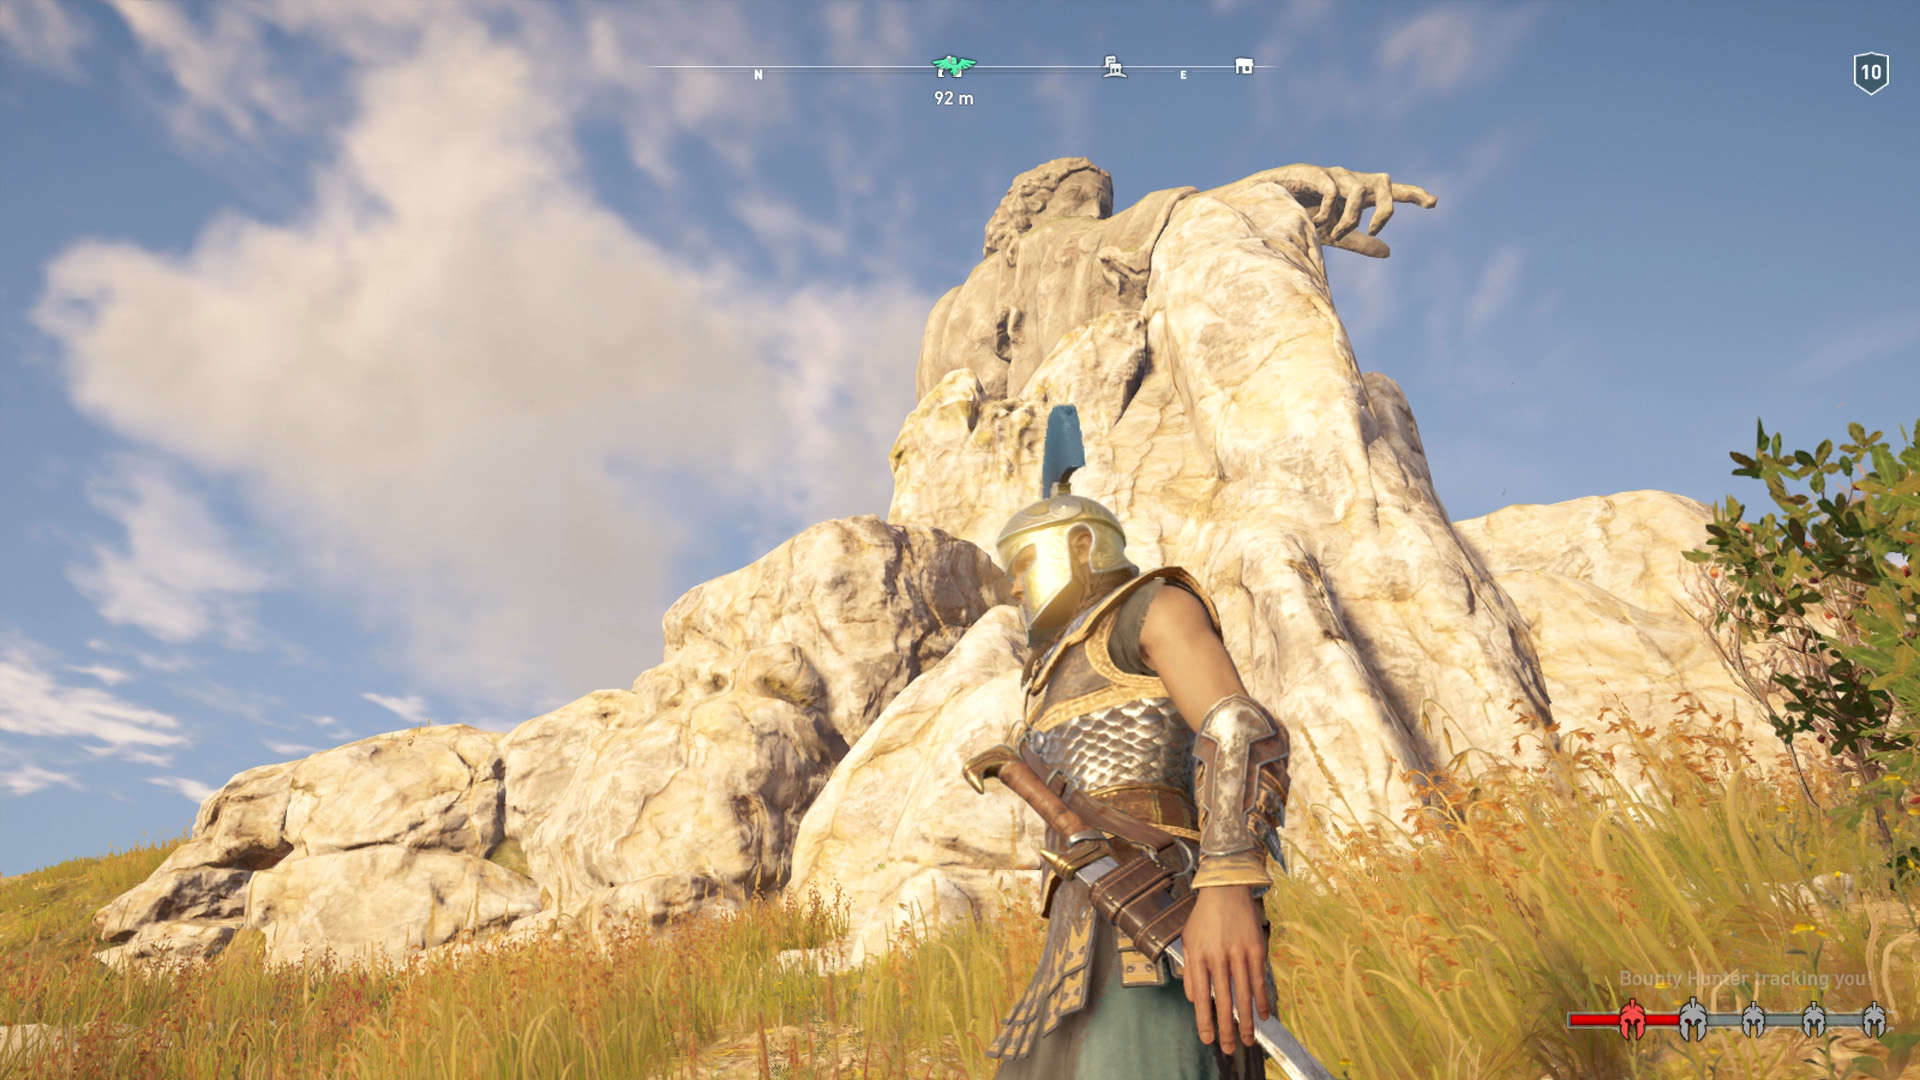 Kassandra is standing at the foot of the Statue of Zeus